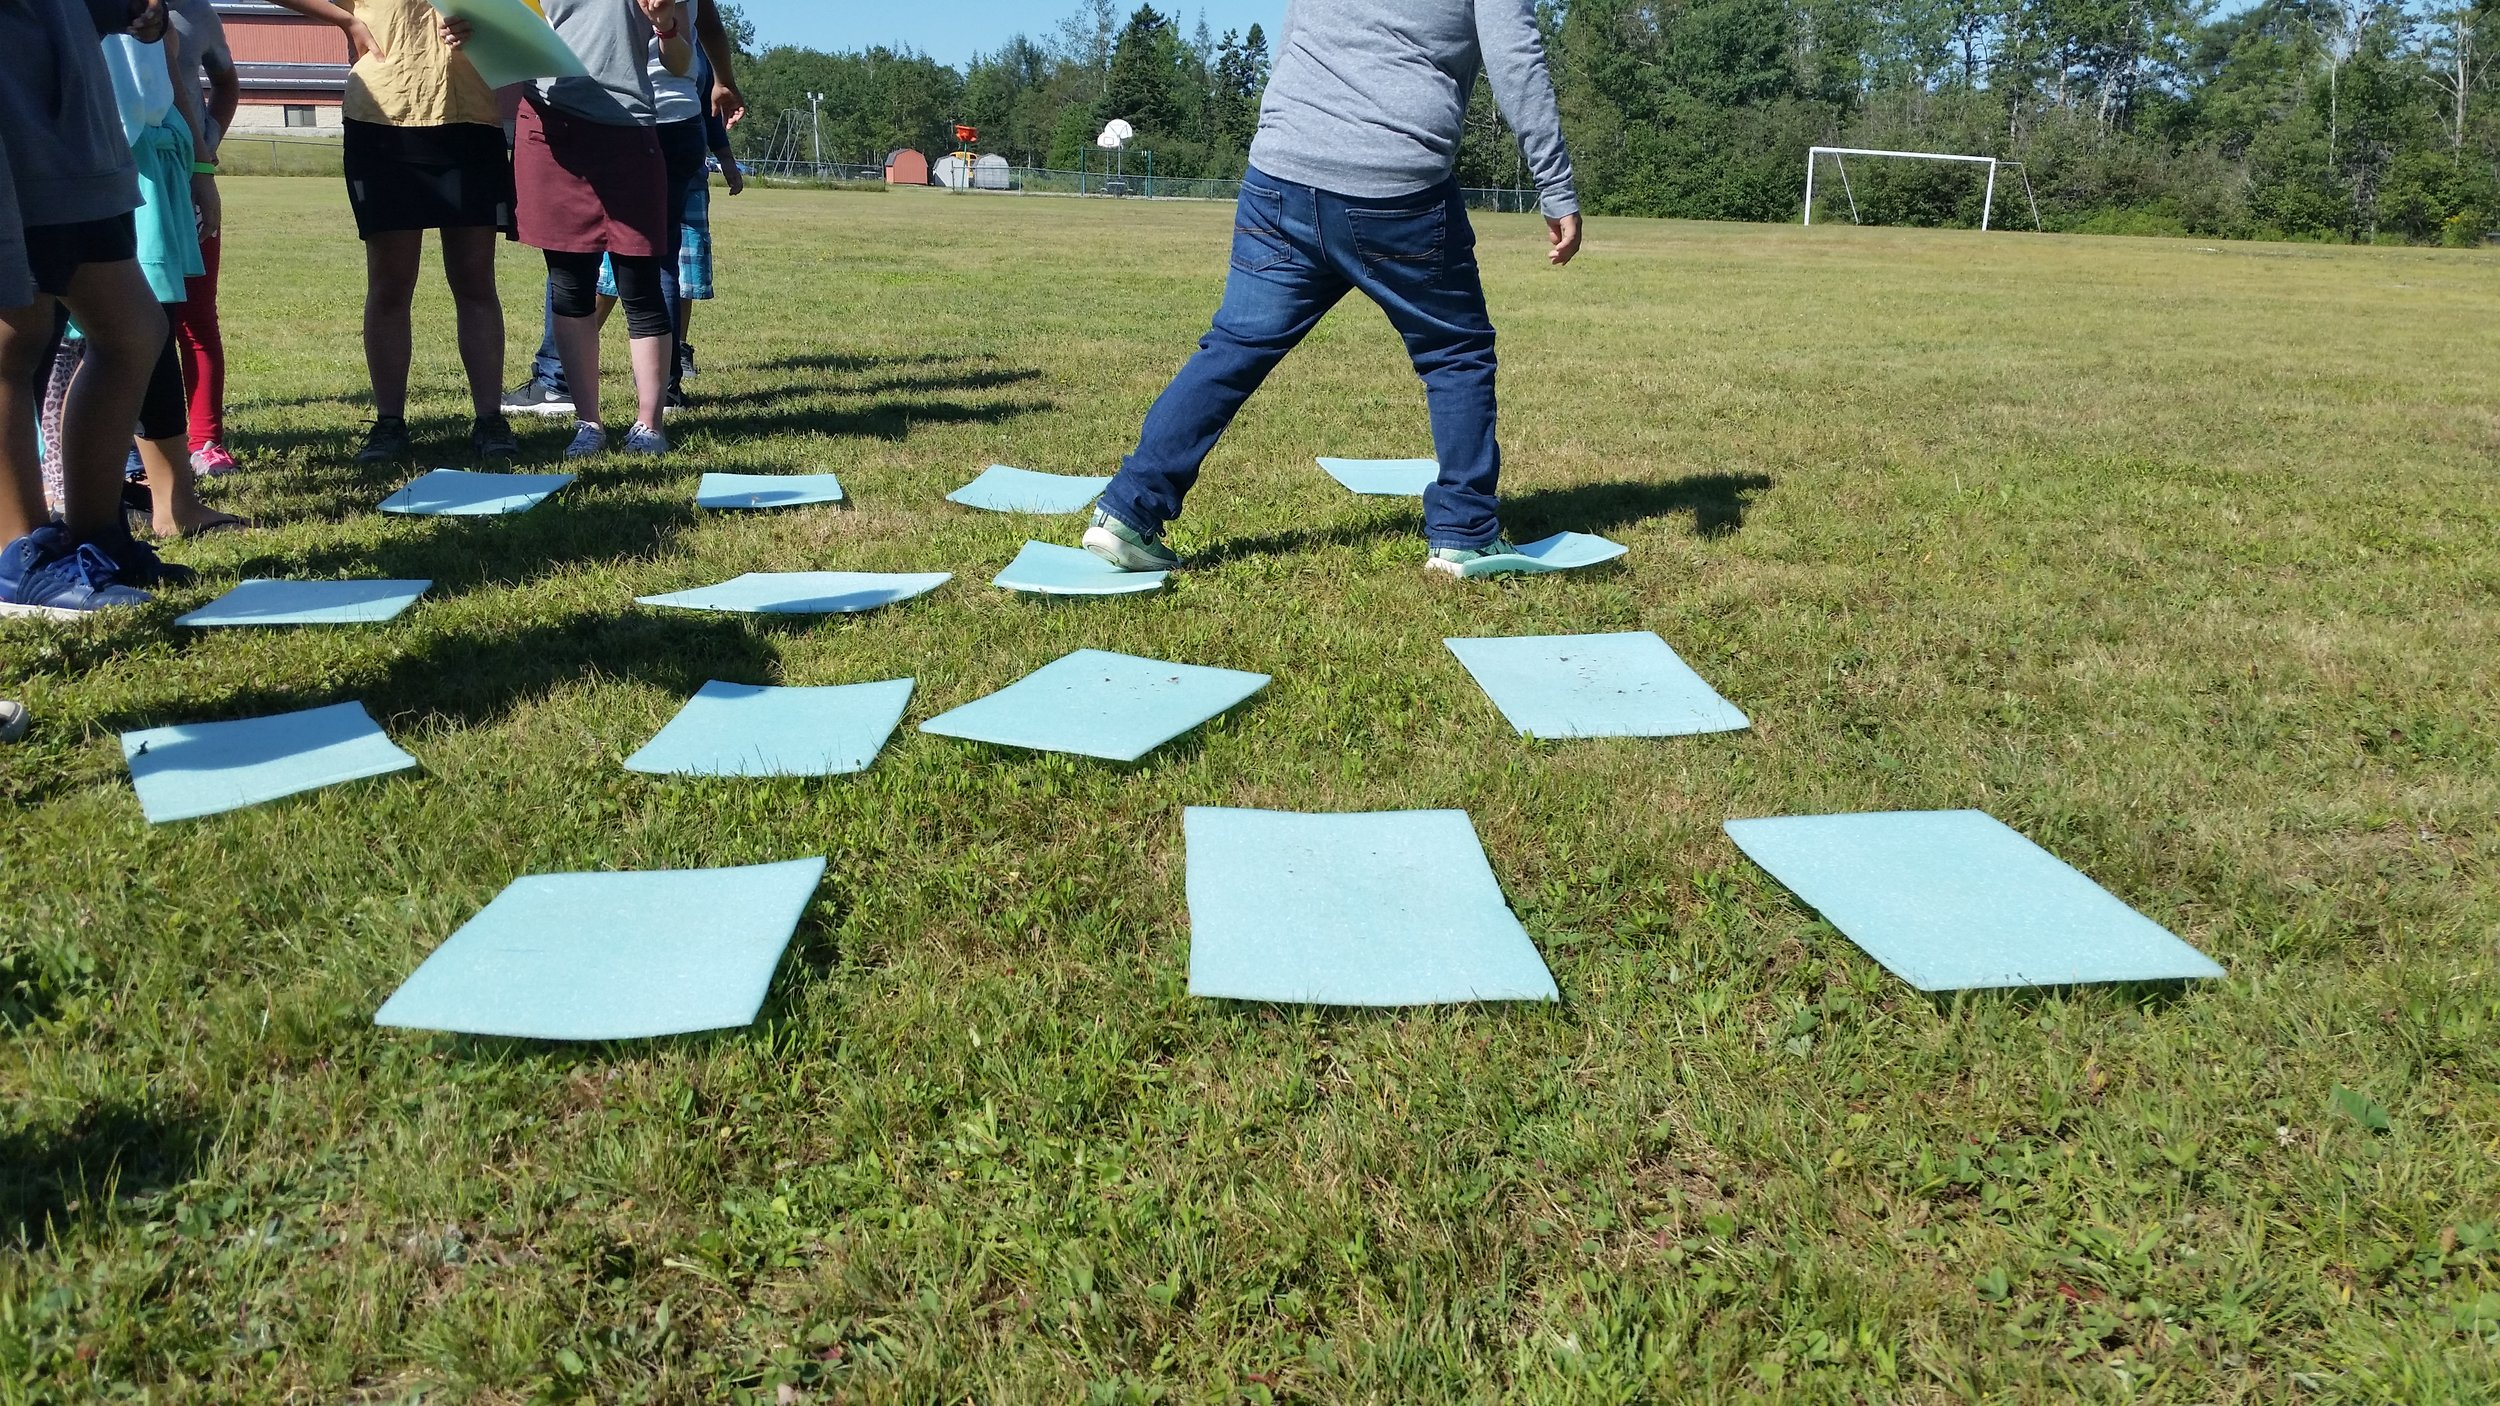 A teambuilding game that also mimicked the migration of monarch butterflies from Mexico to Maine